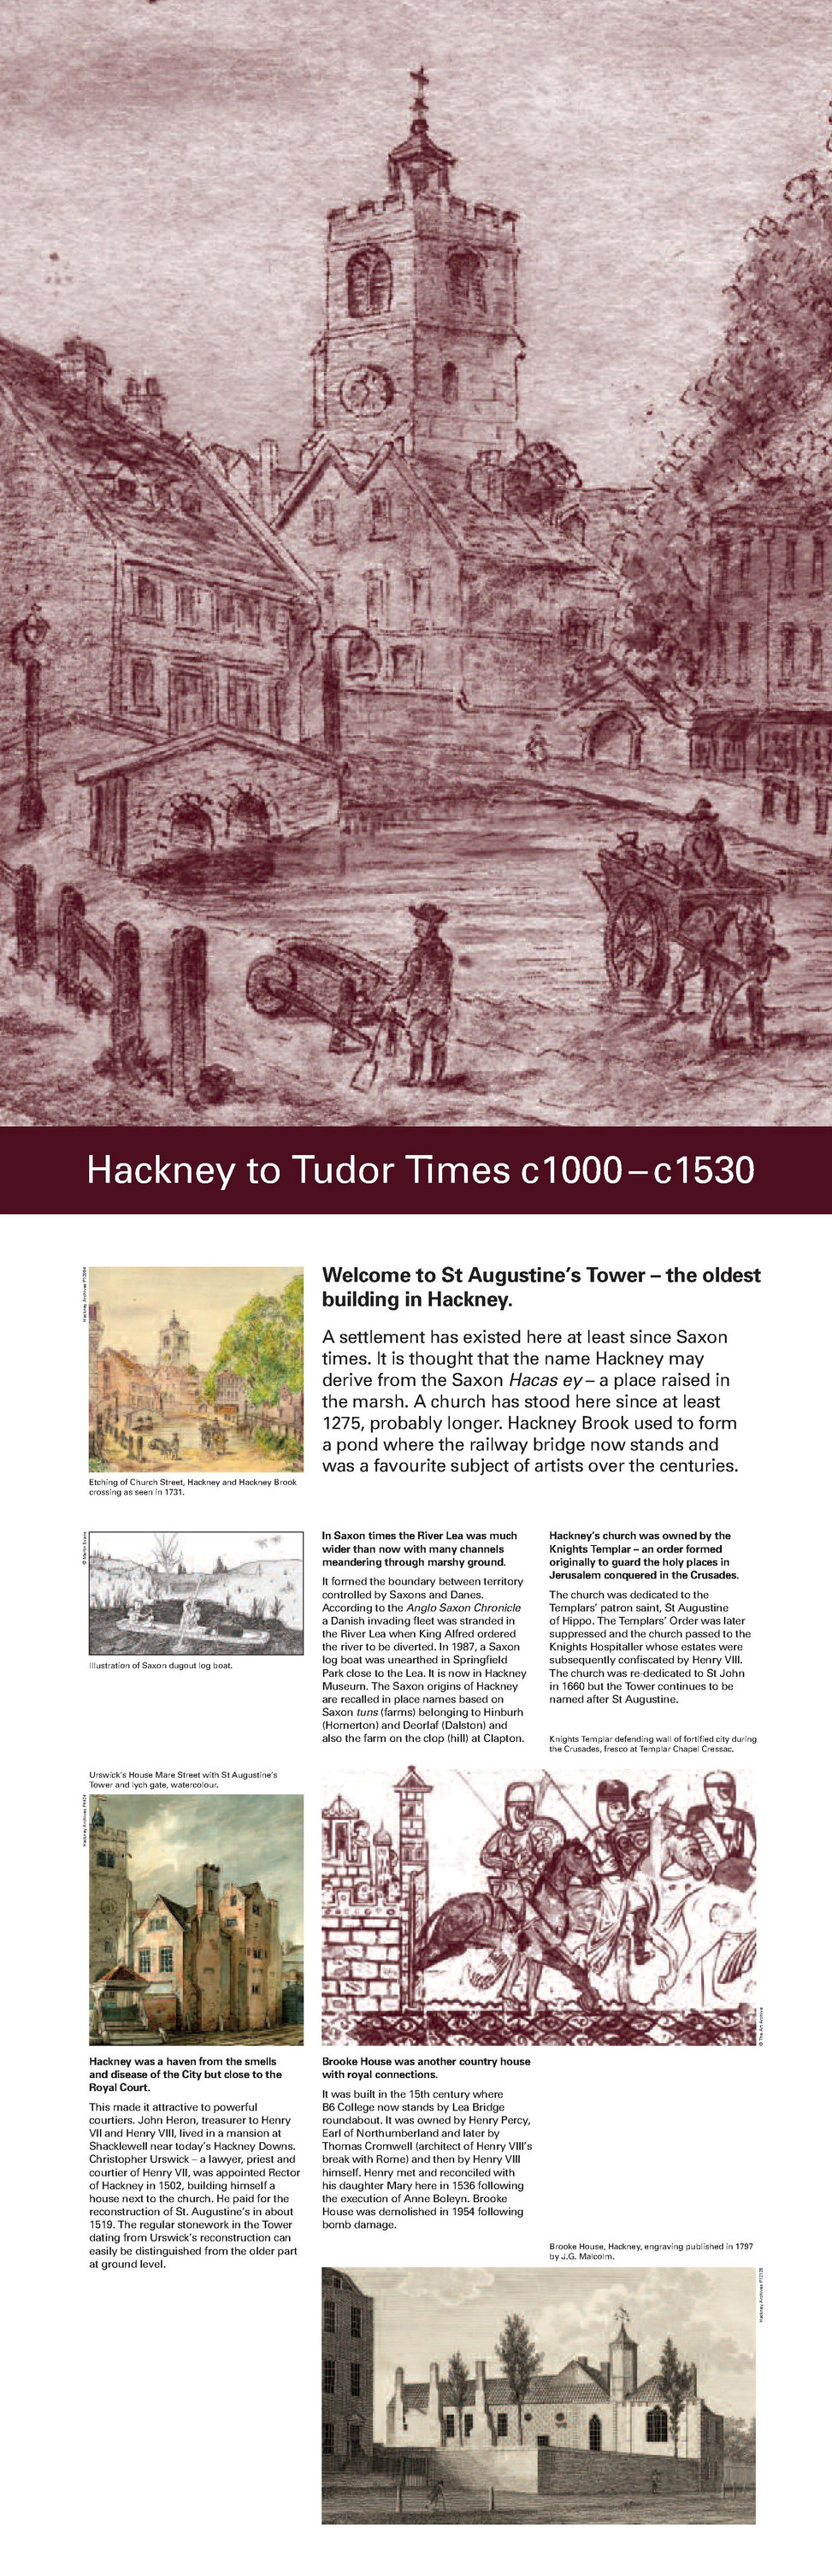 1 HACKNEY THROUGH THE AGES.